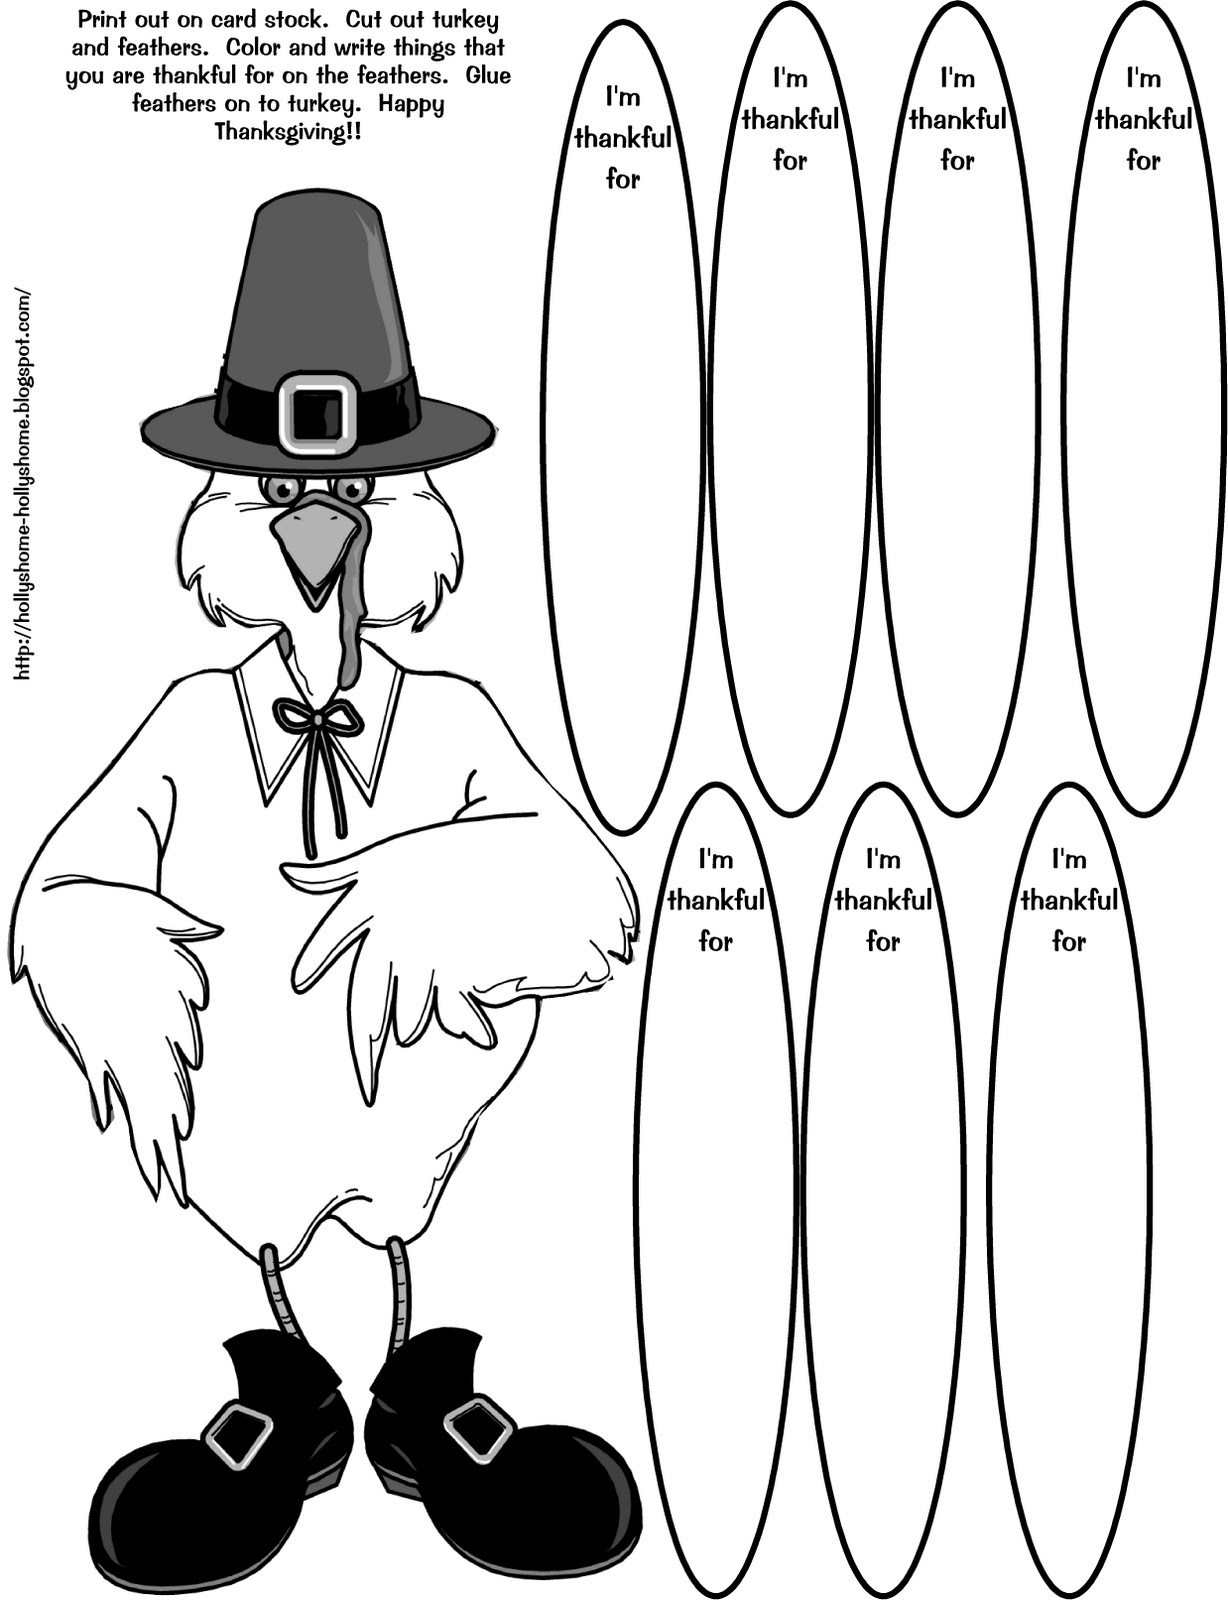 HollysHome Family Life Thankful Turkey Coloring Craft